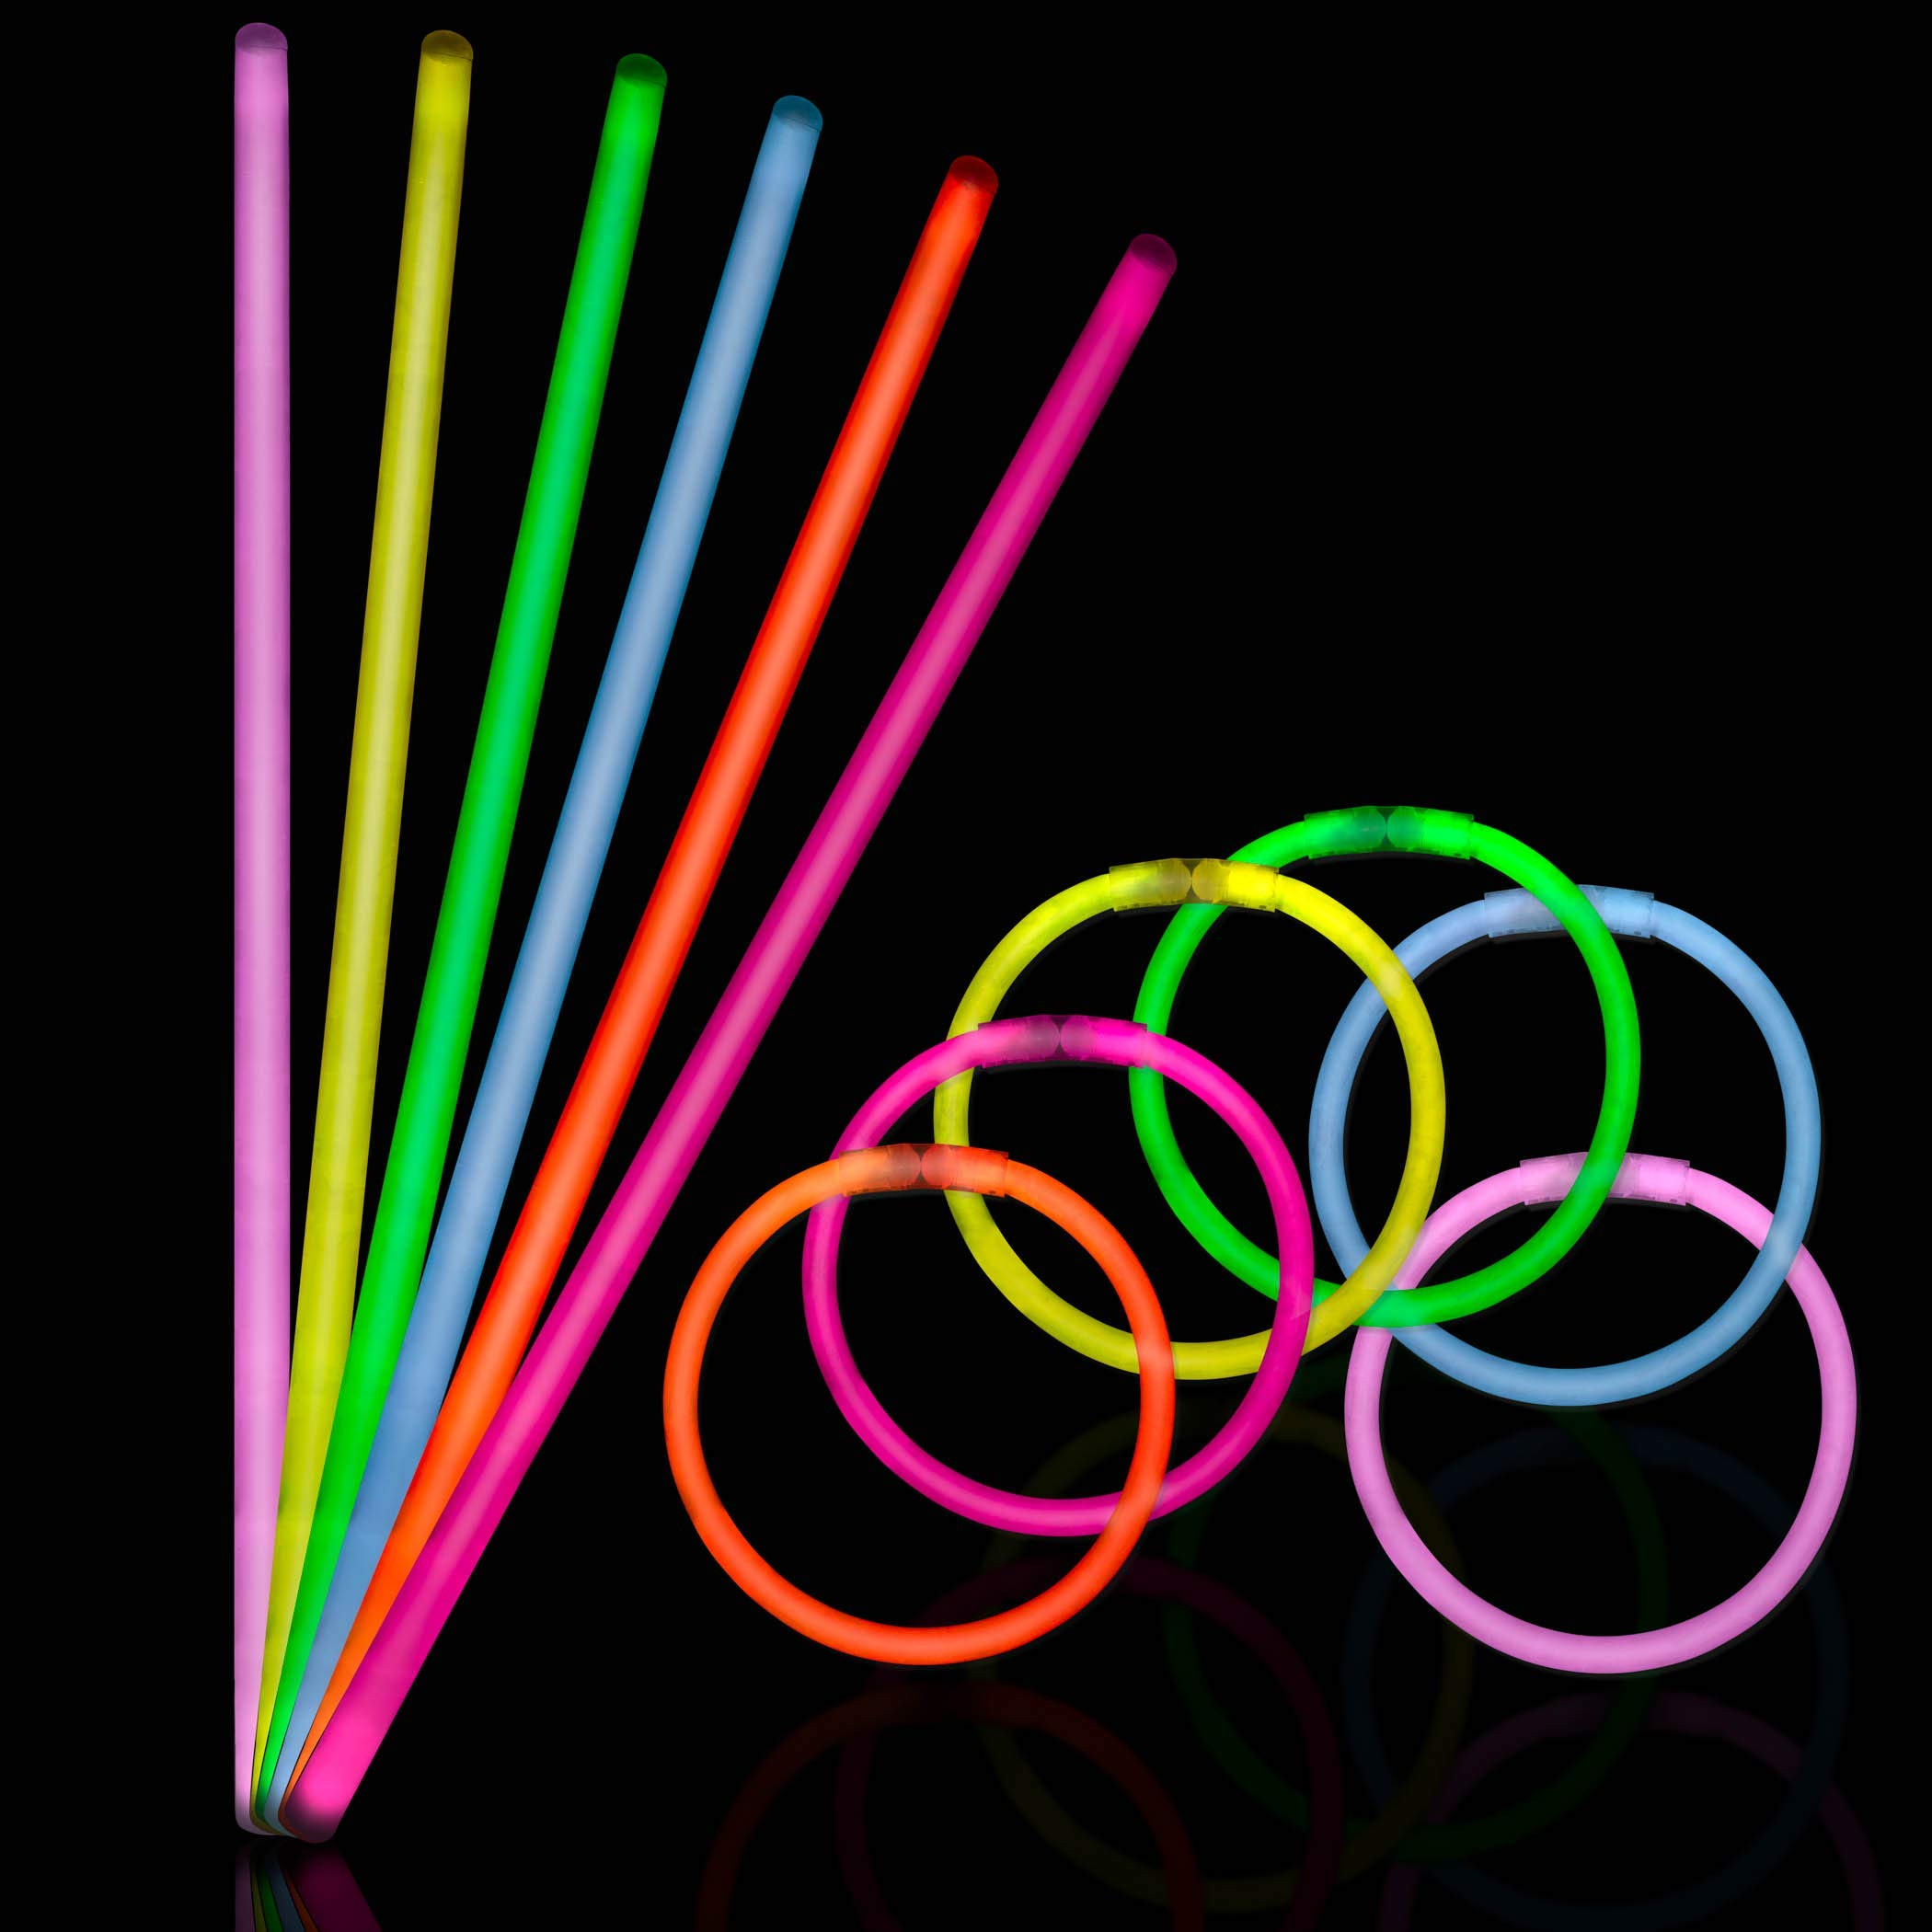 150 Ultra Bright Glow Sticks - Total 300 Pcs - 8'' Necklaces And Bracelets Glow Stick With Connectors - Bulk Party Pack Ultra Bright Glowsticks - 10 Hour Duration - Mixed Colors In 3 Tubes by Glowing U.S. inc (Image #2)